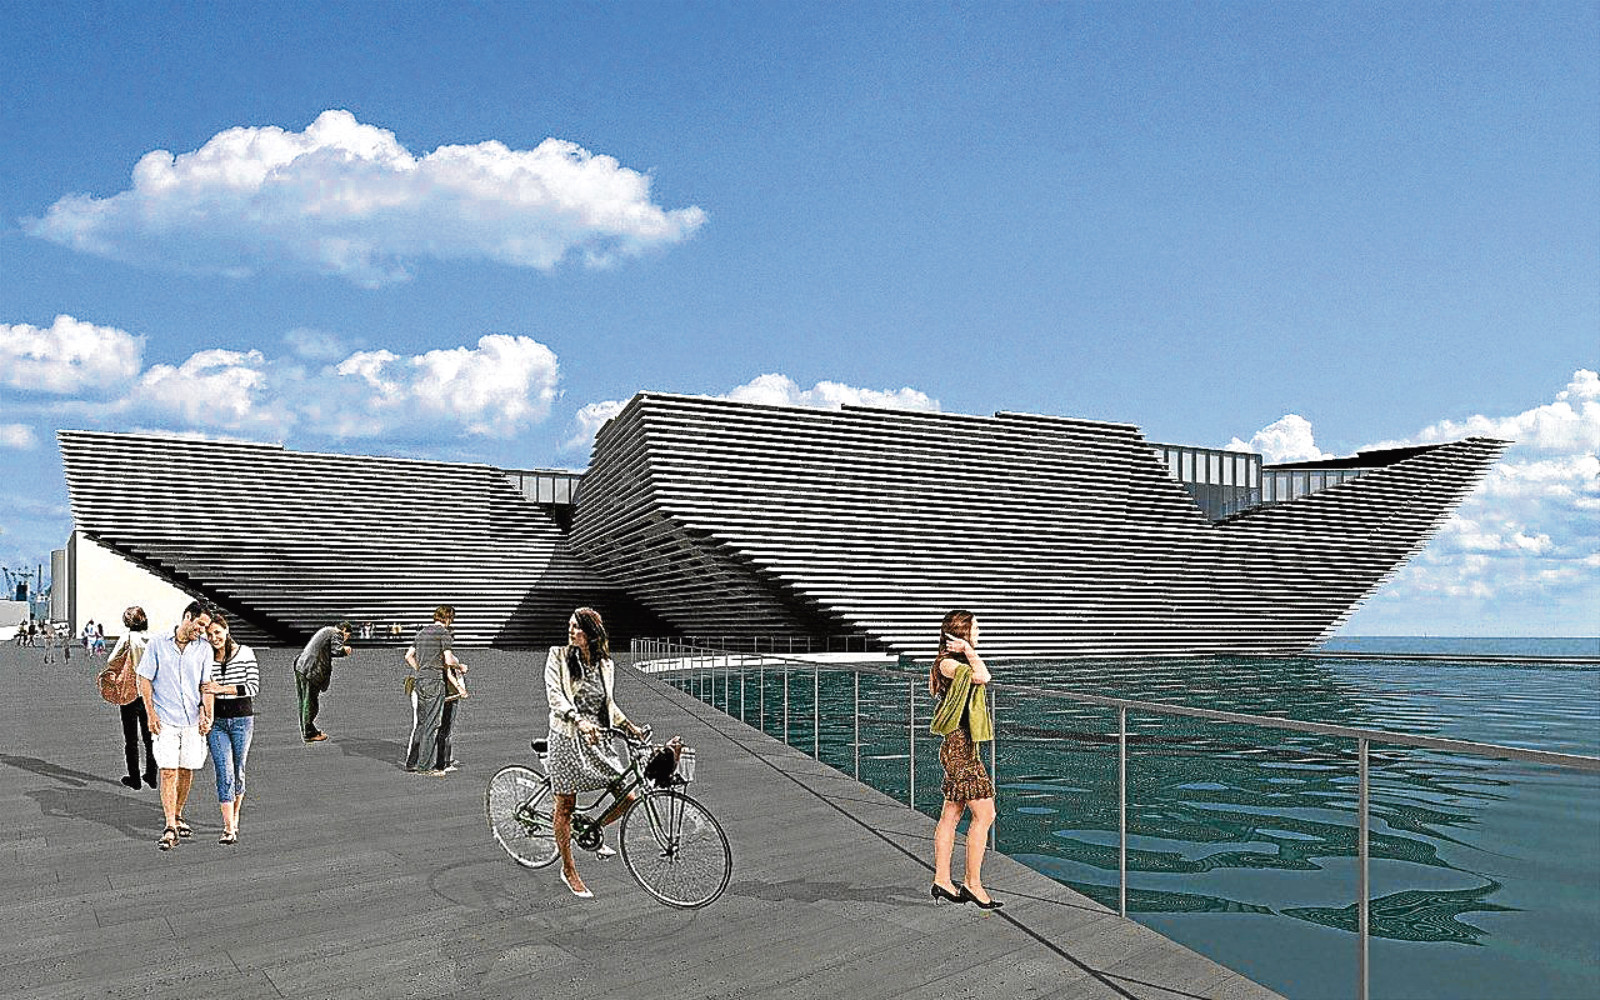 ZMMA Ltd has won a contract to design a major part of the V&A Museum in Dundee.